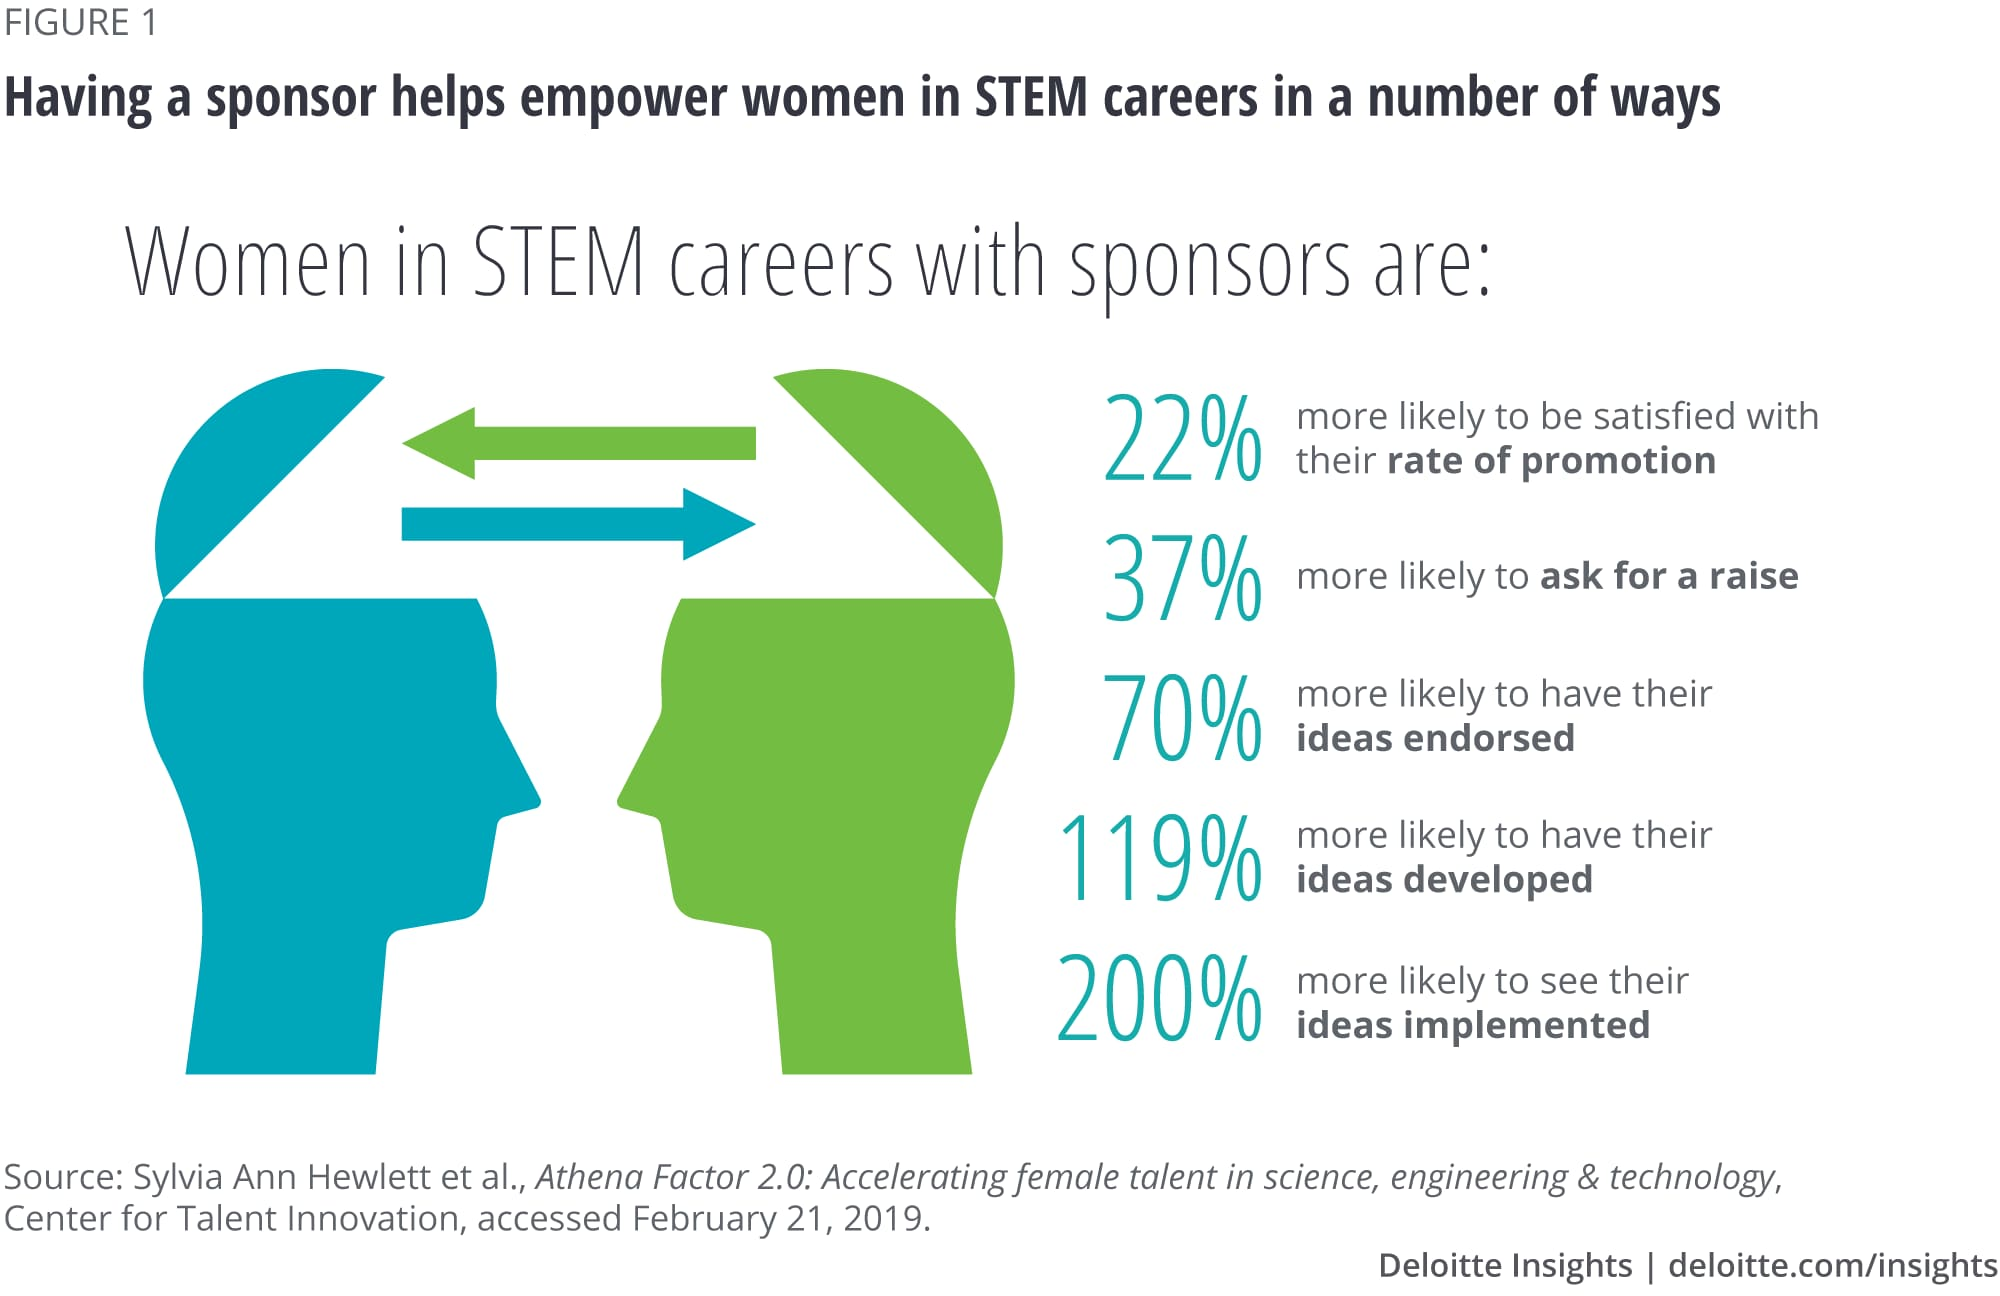 Having a sponsor helps empower women in STEM careers in a number of ways